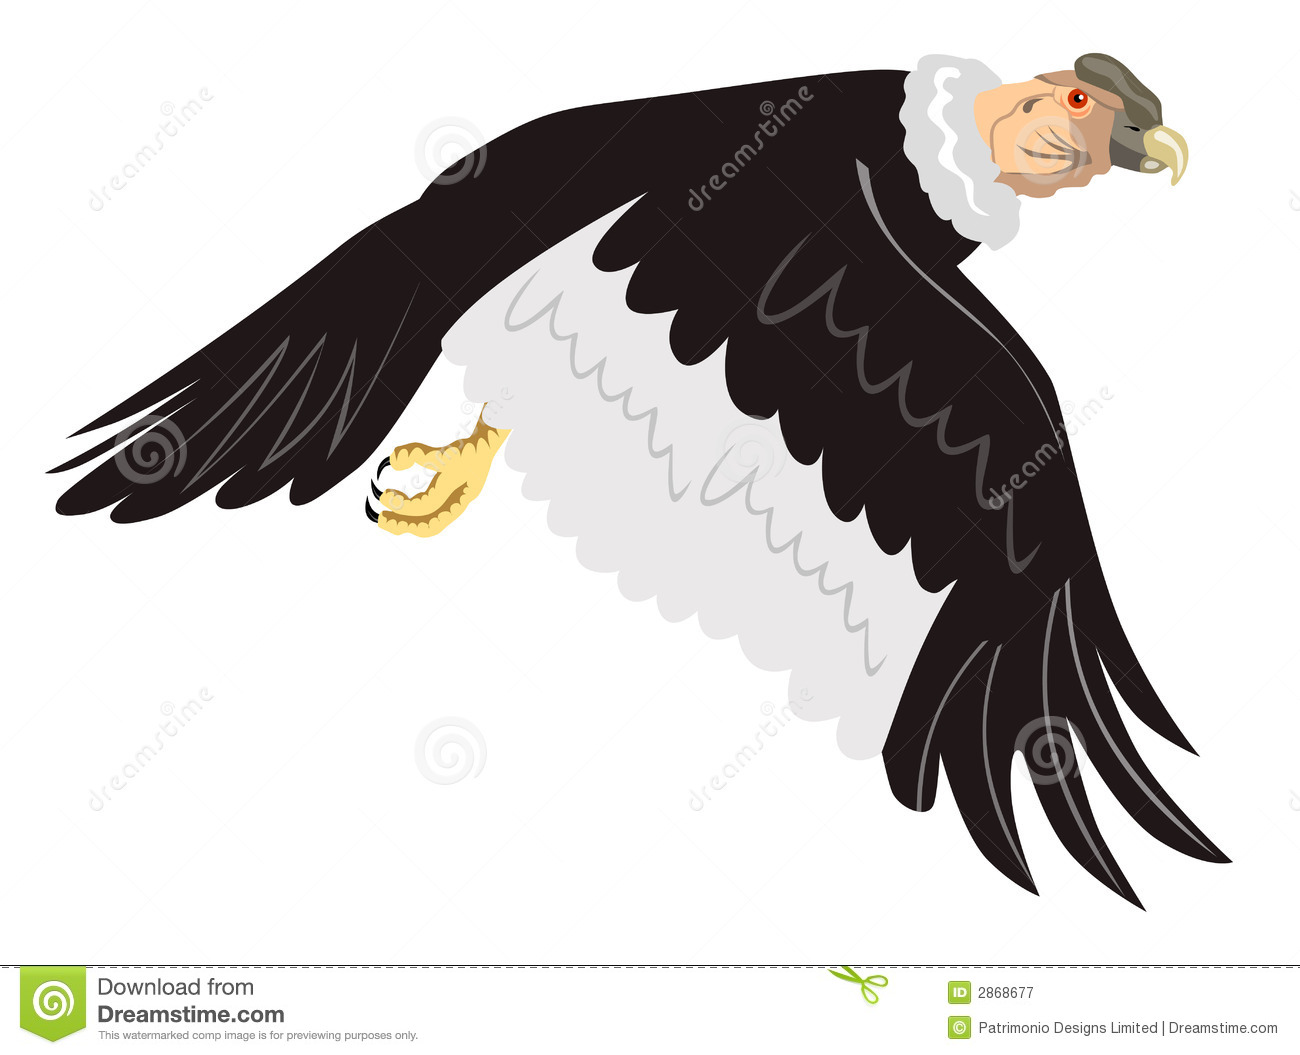 Andean Condor clipart #17, Download drawings